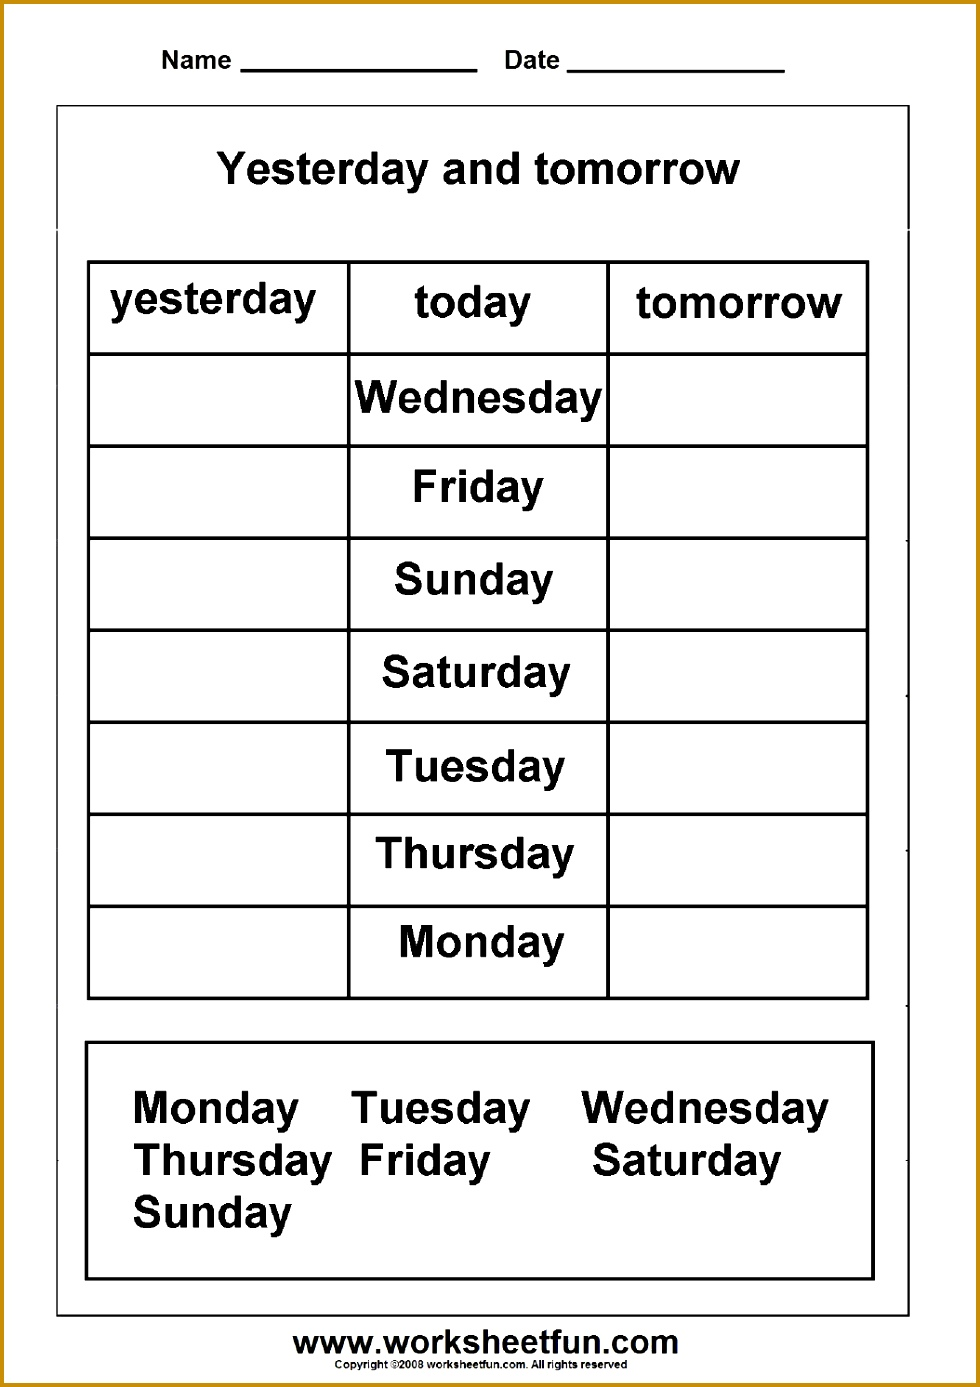 Days of the Week – Yesterday and Tomorrow – 6 Worksheets FREE Printable Worksheets 1387980